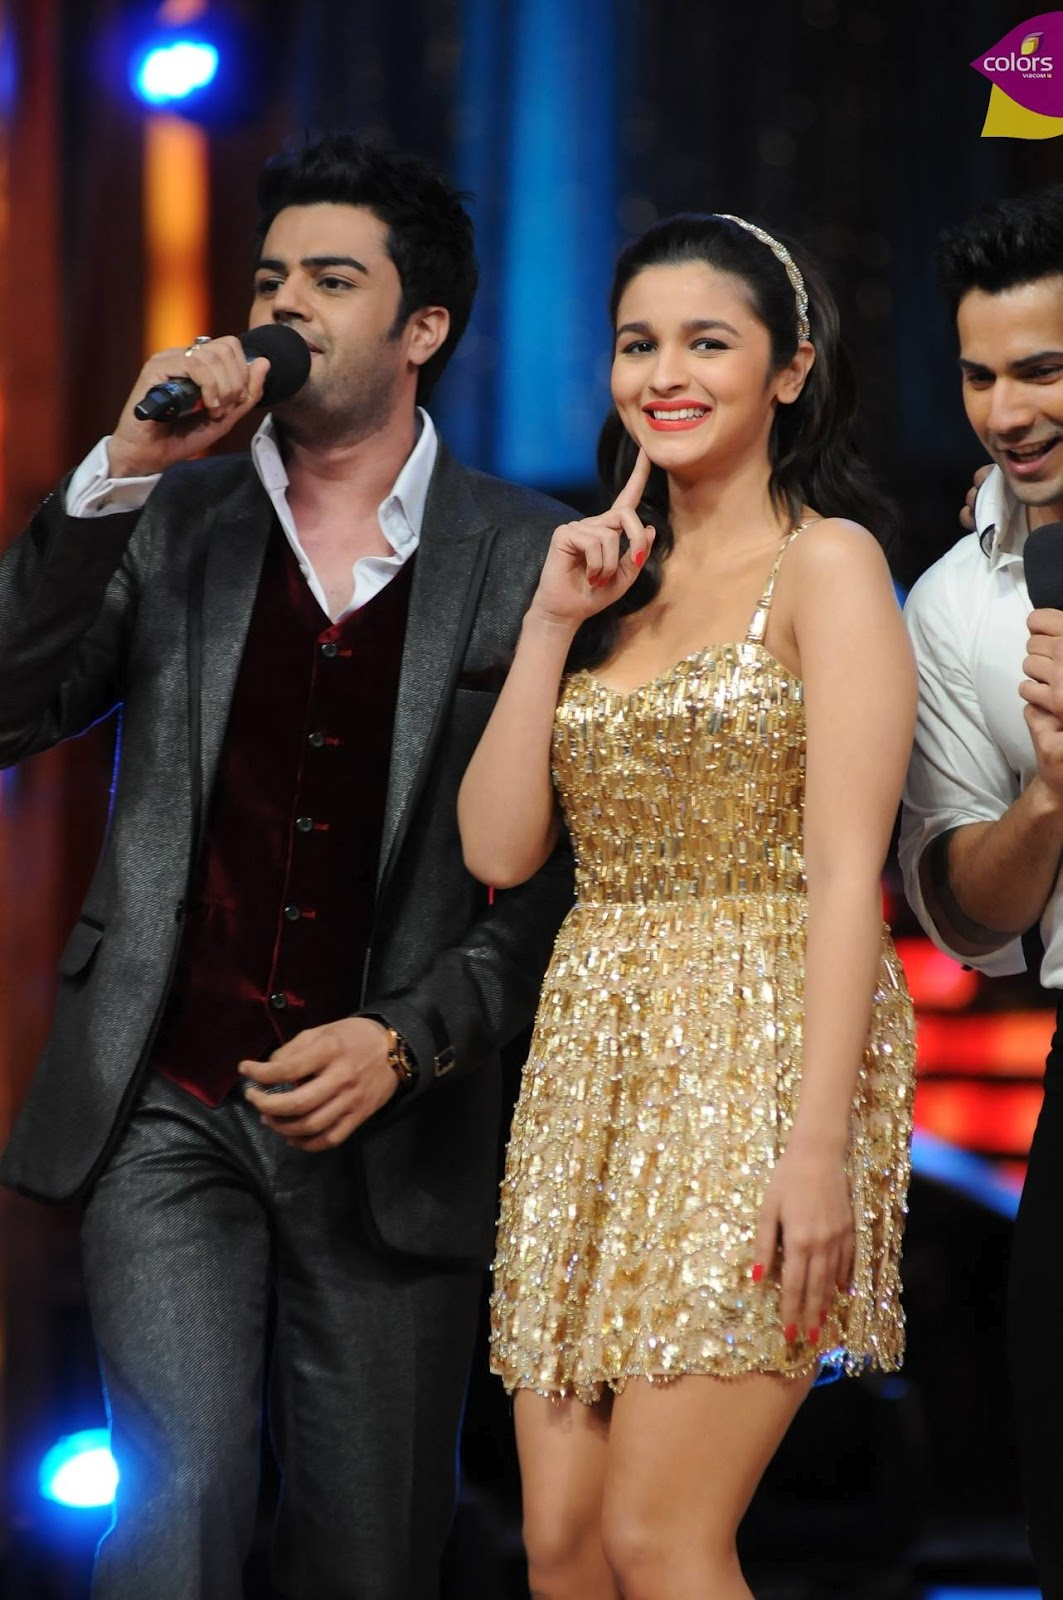 Alia Bhat In Jhalak dikhlaja new Images